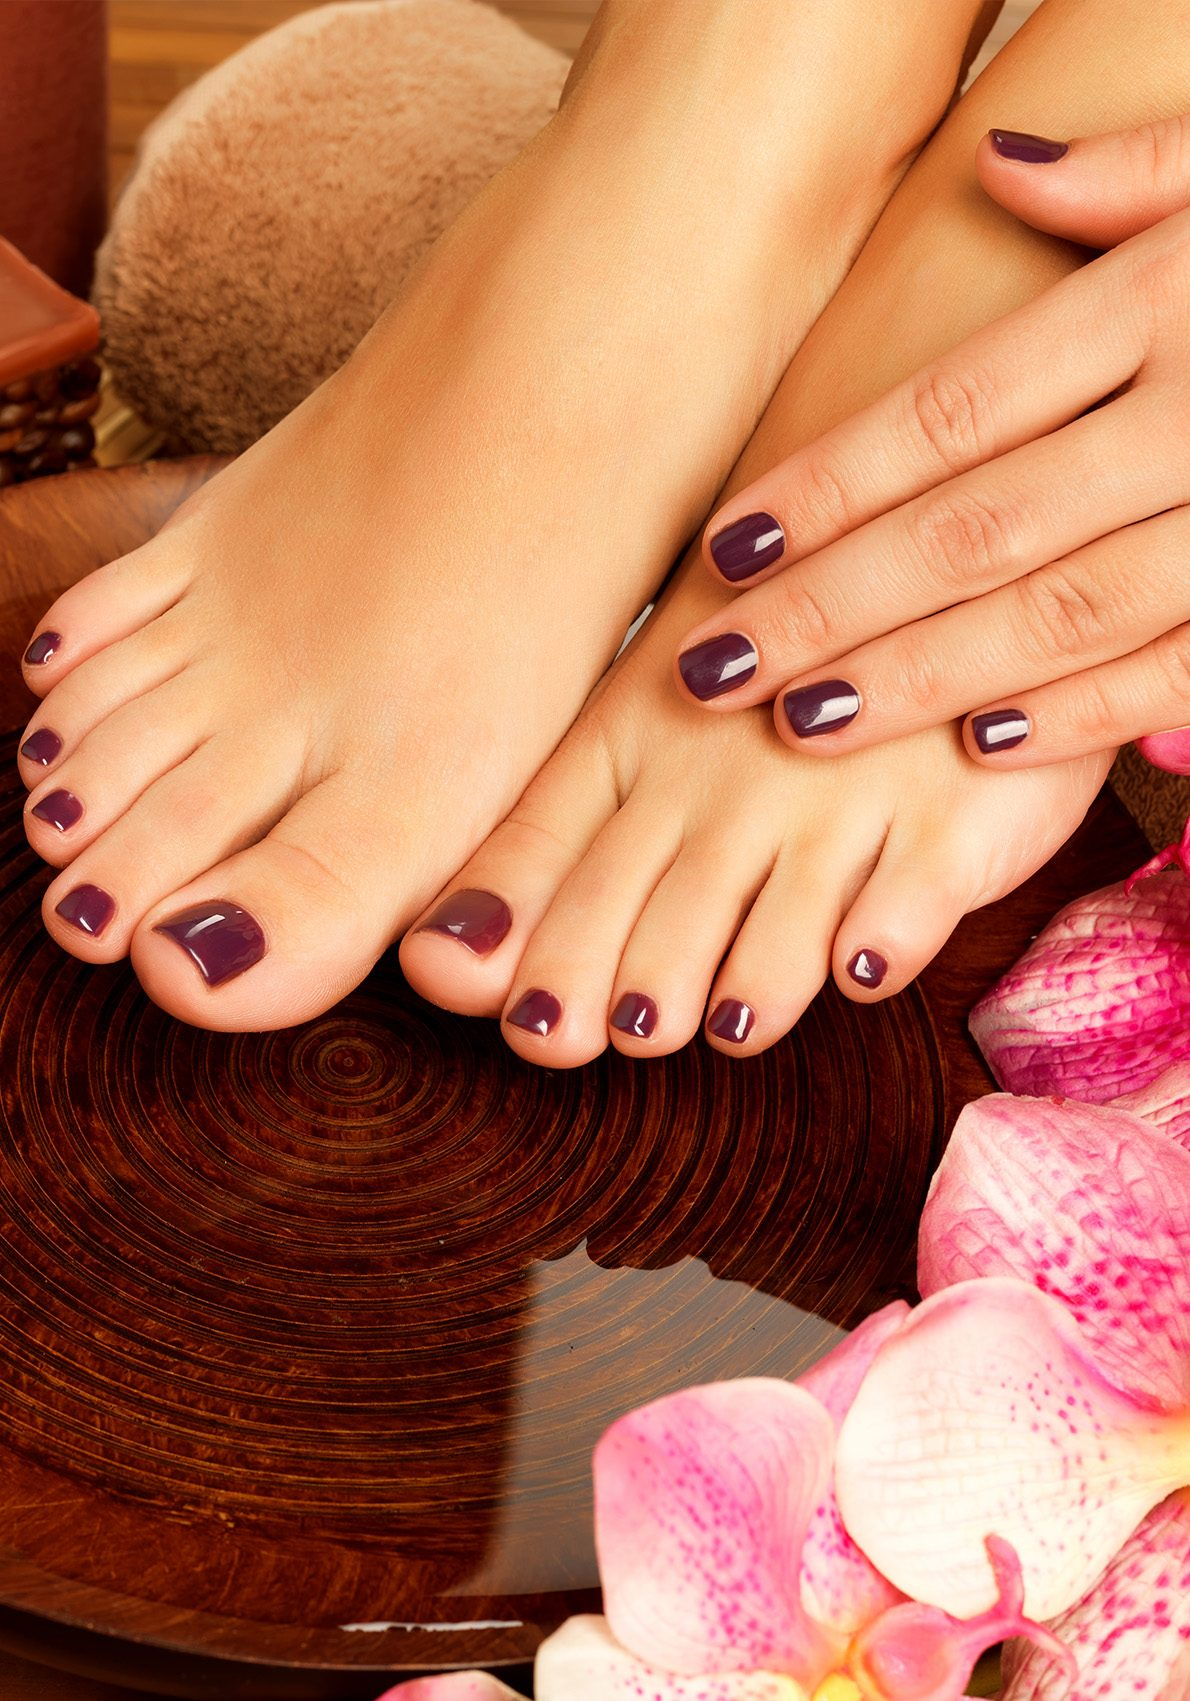 Insurance For Nail Salons | Painted finger and toe nails